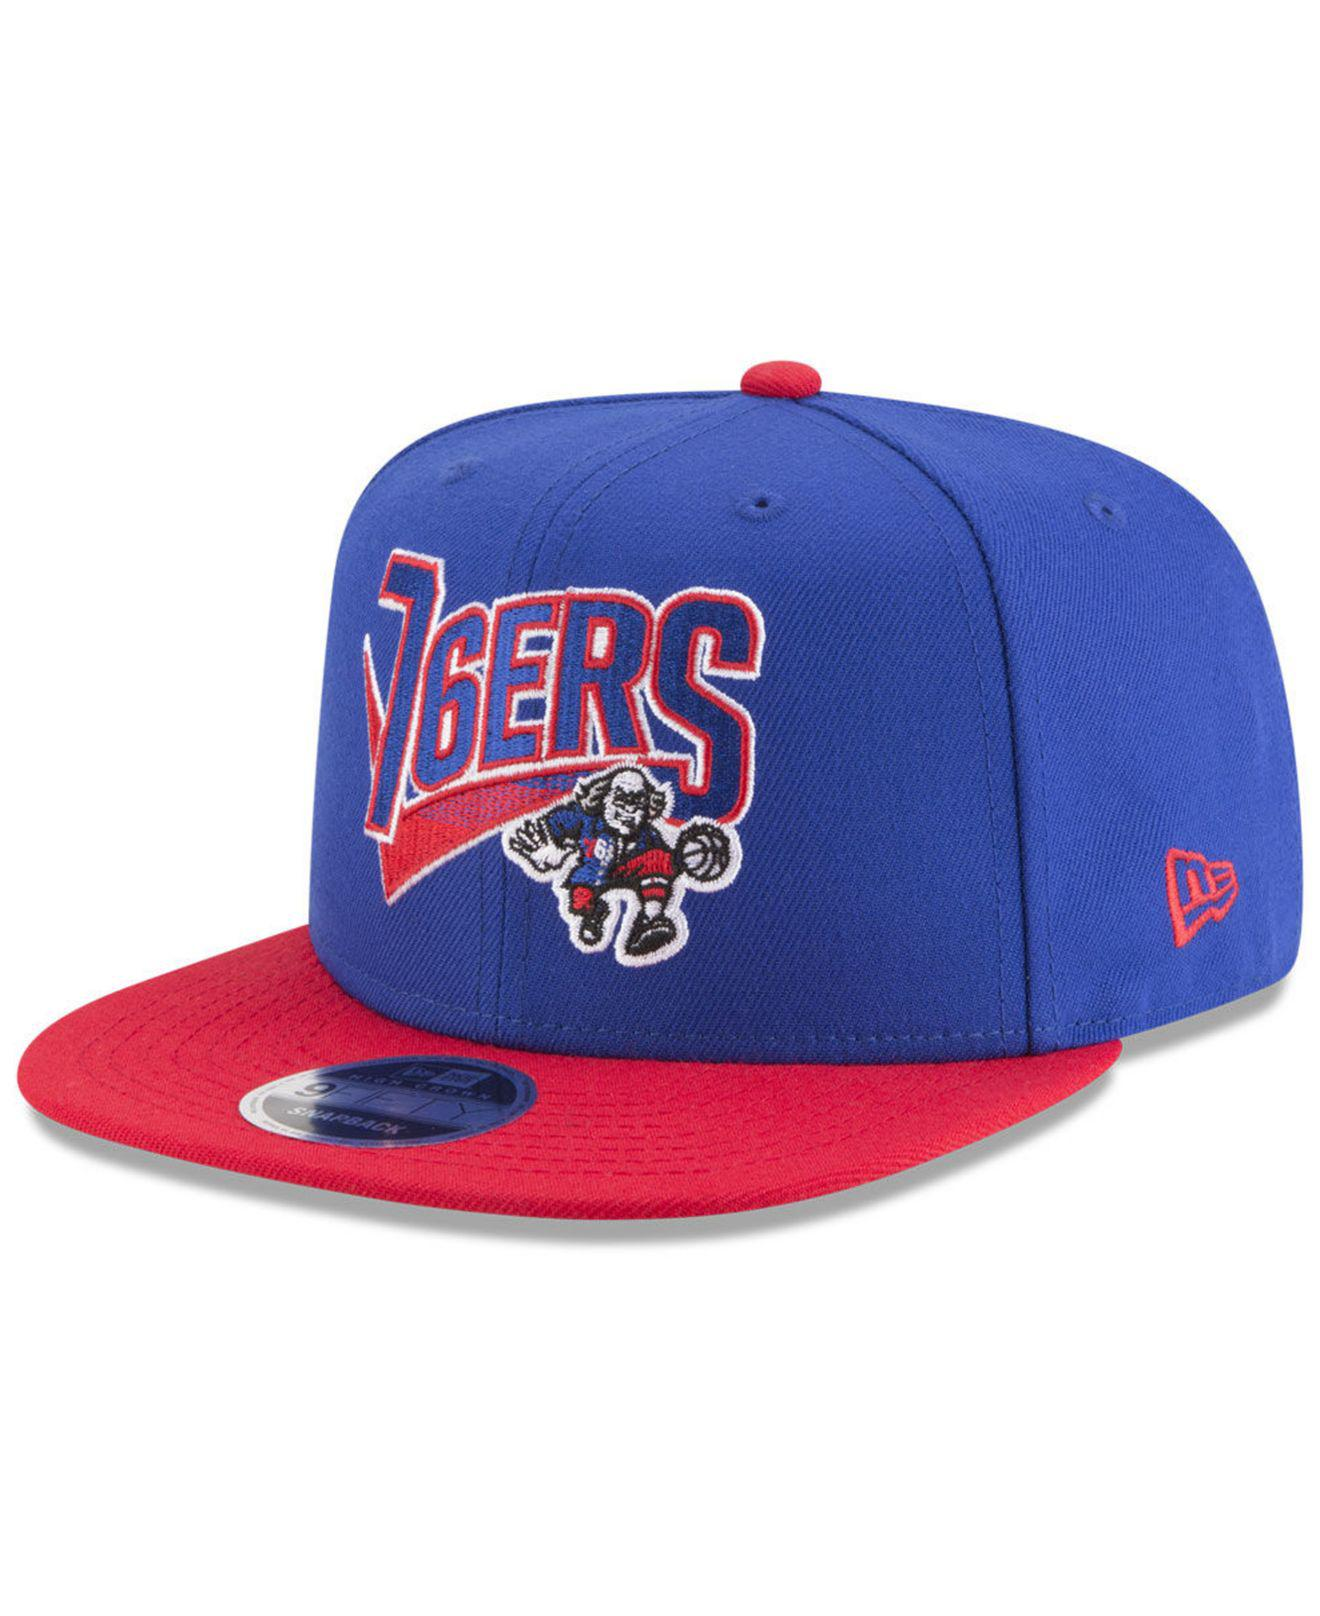 best cheap 093f0 cd4f0 ... coupon code ktz. mens blue philadelphia 76ers retro tail 9fifty  snapback cap a0daf 4c30d